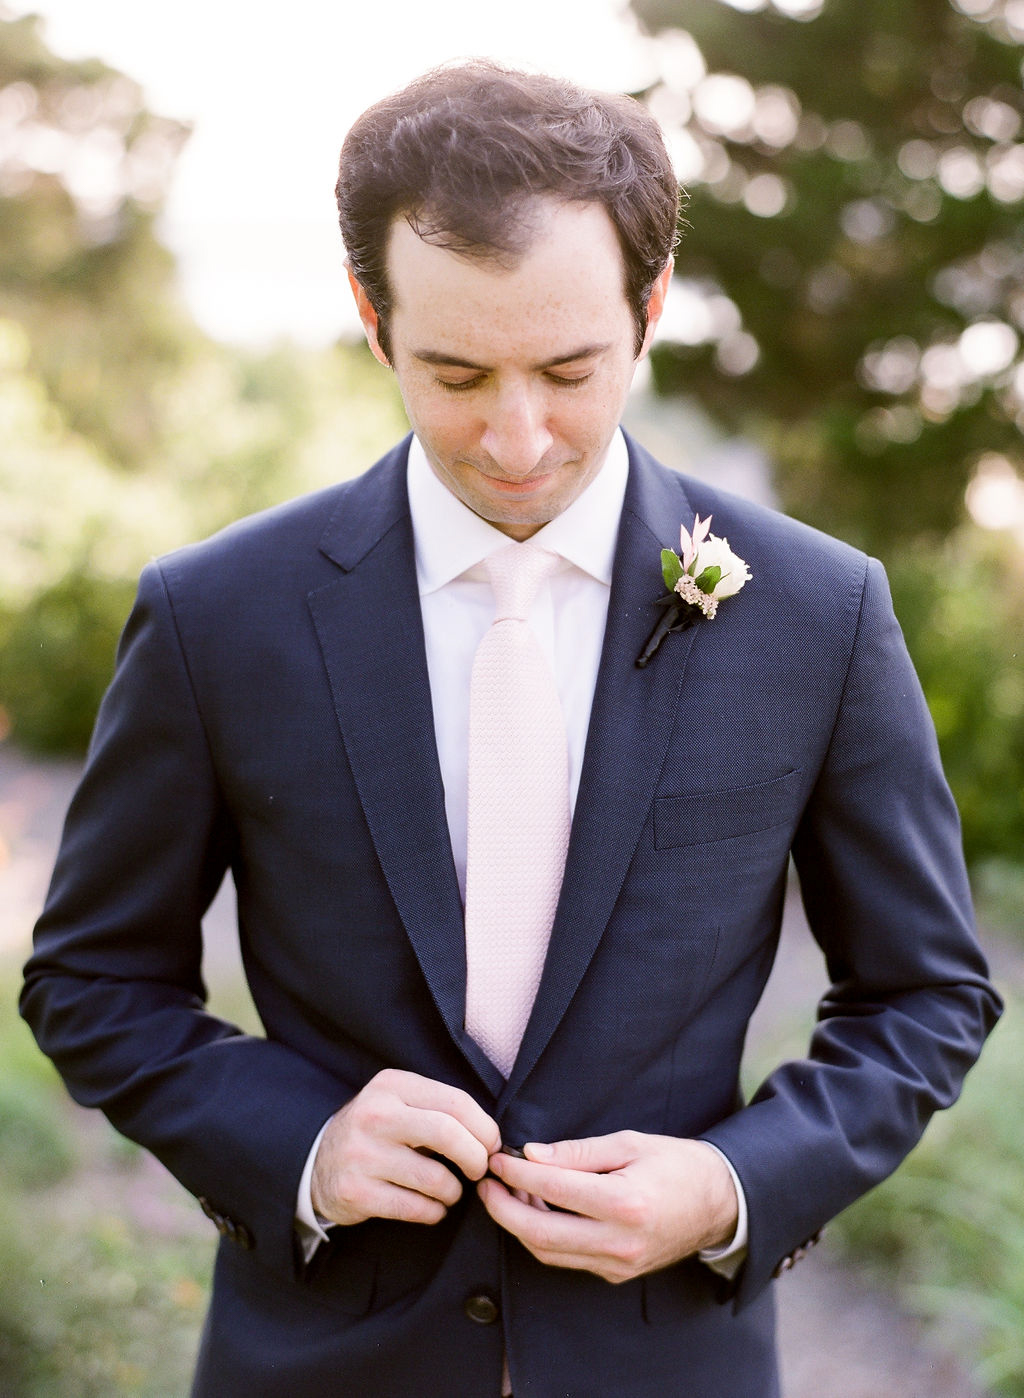 groom buttoning wedding suit jacket